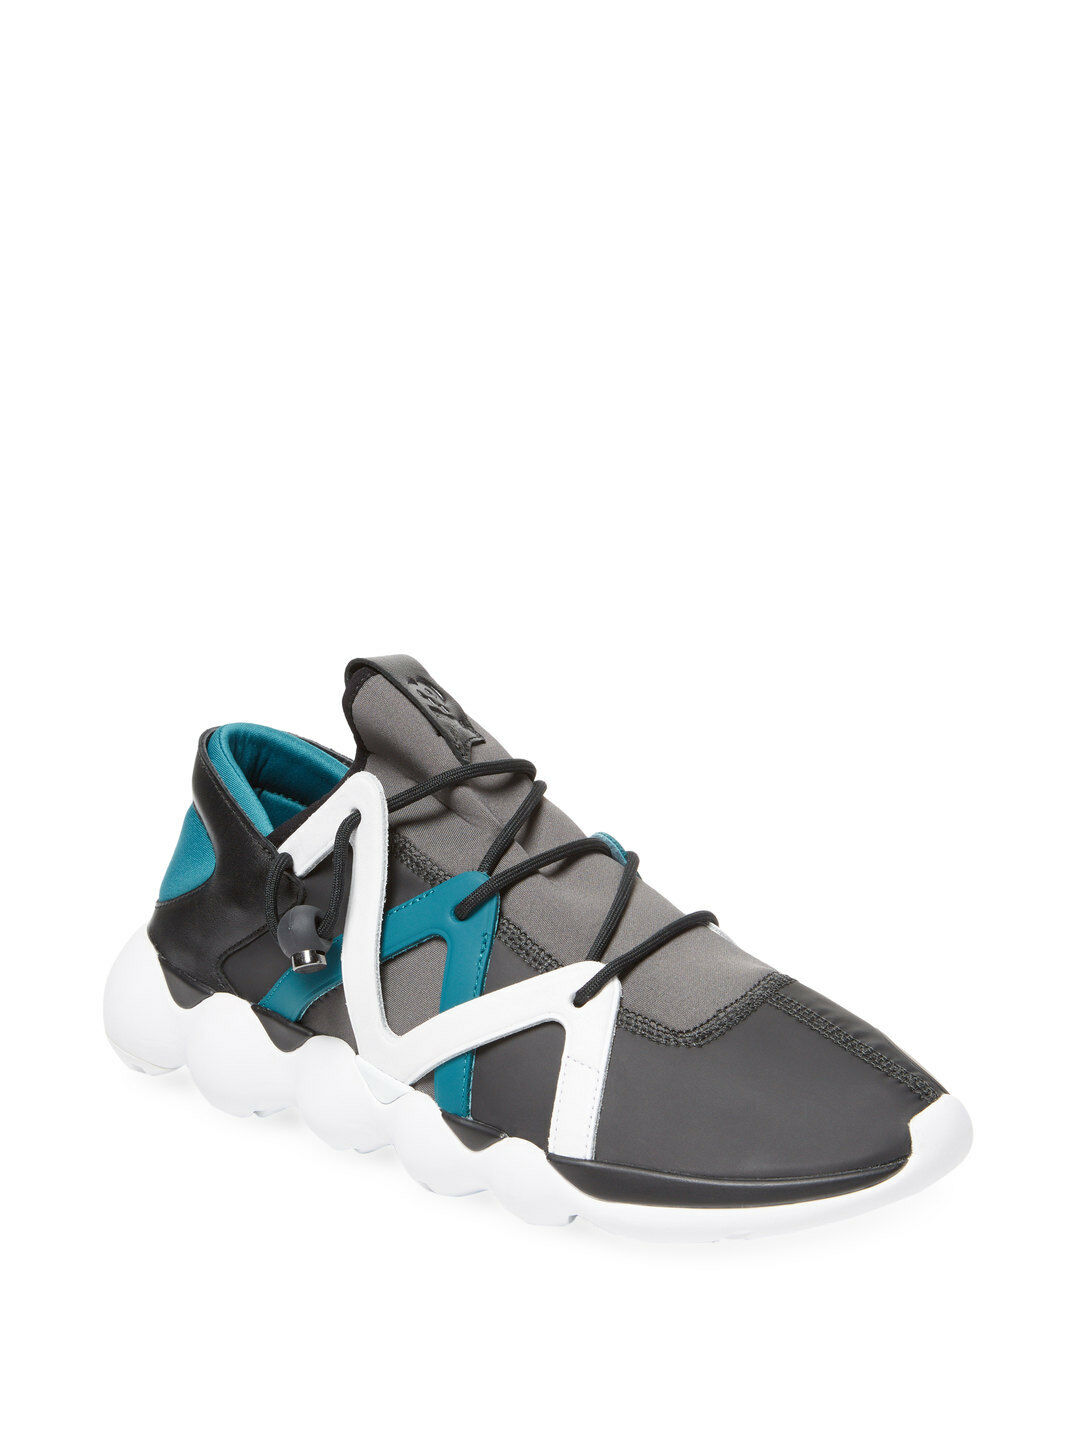 Adidas Y-3 Kyujo Low Top Sneakers, US Multi-Color (BB4737) Size 11.5 US Sneakers, 5e0354